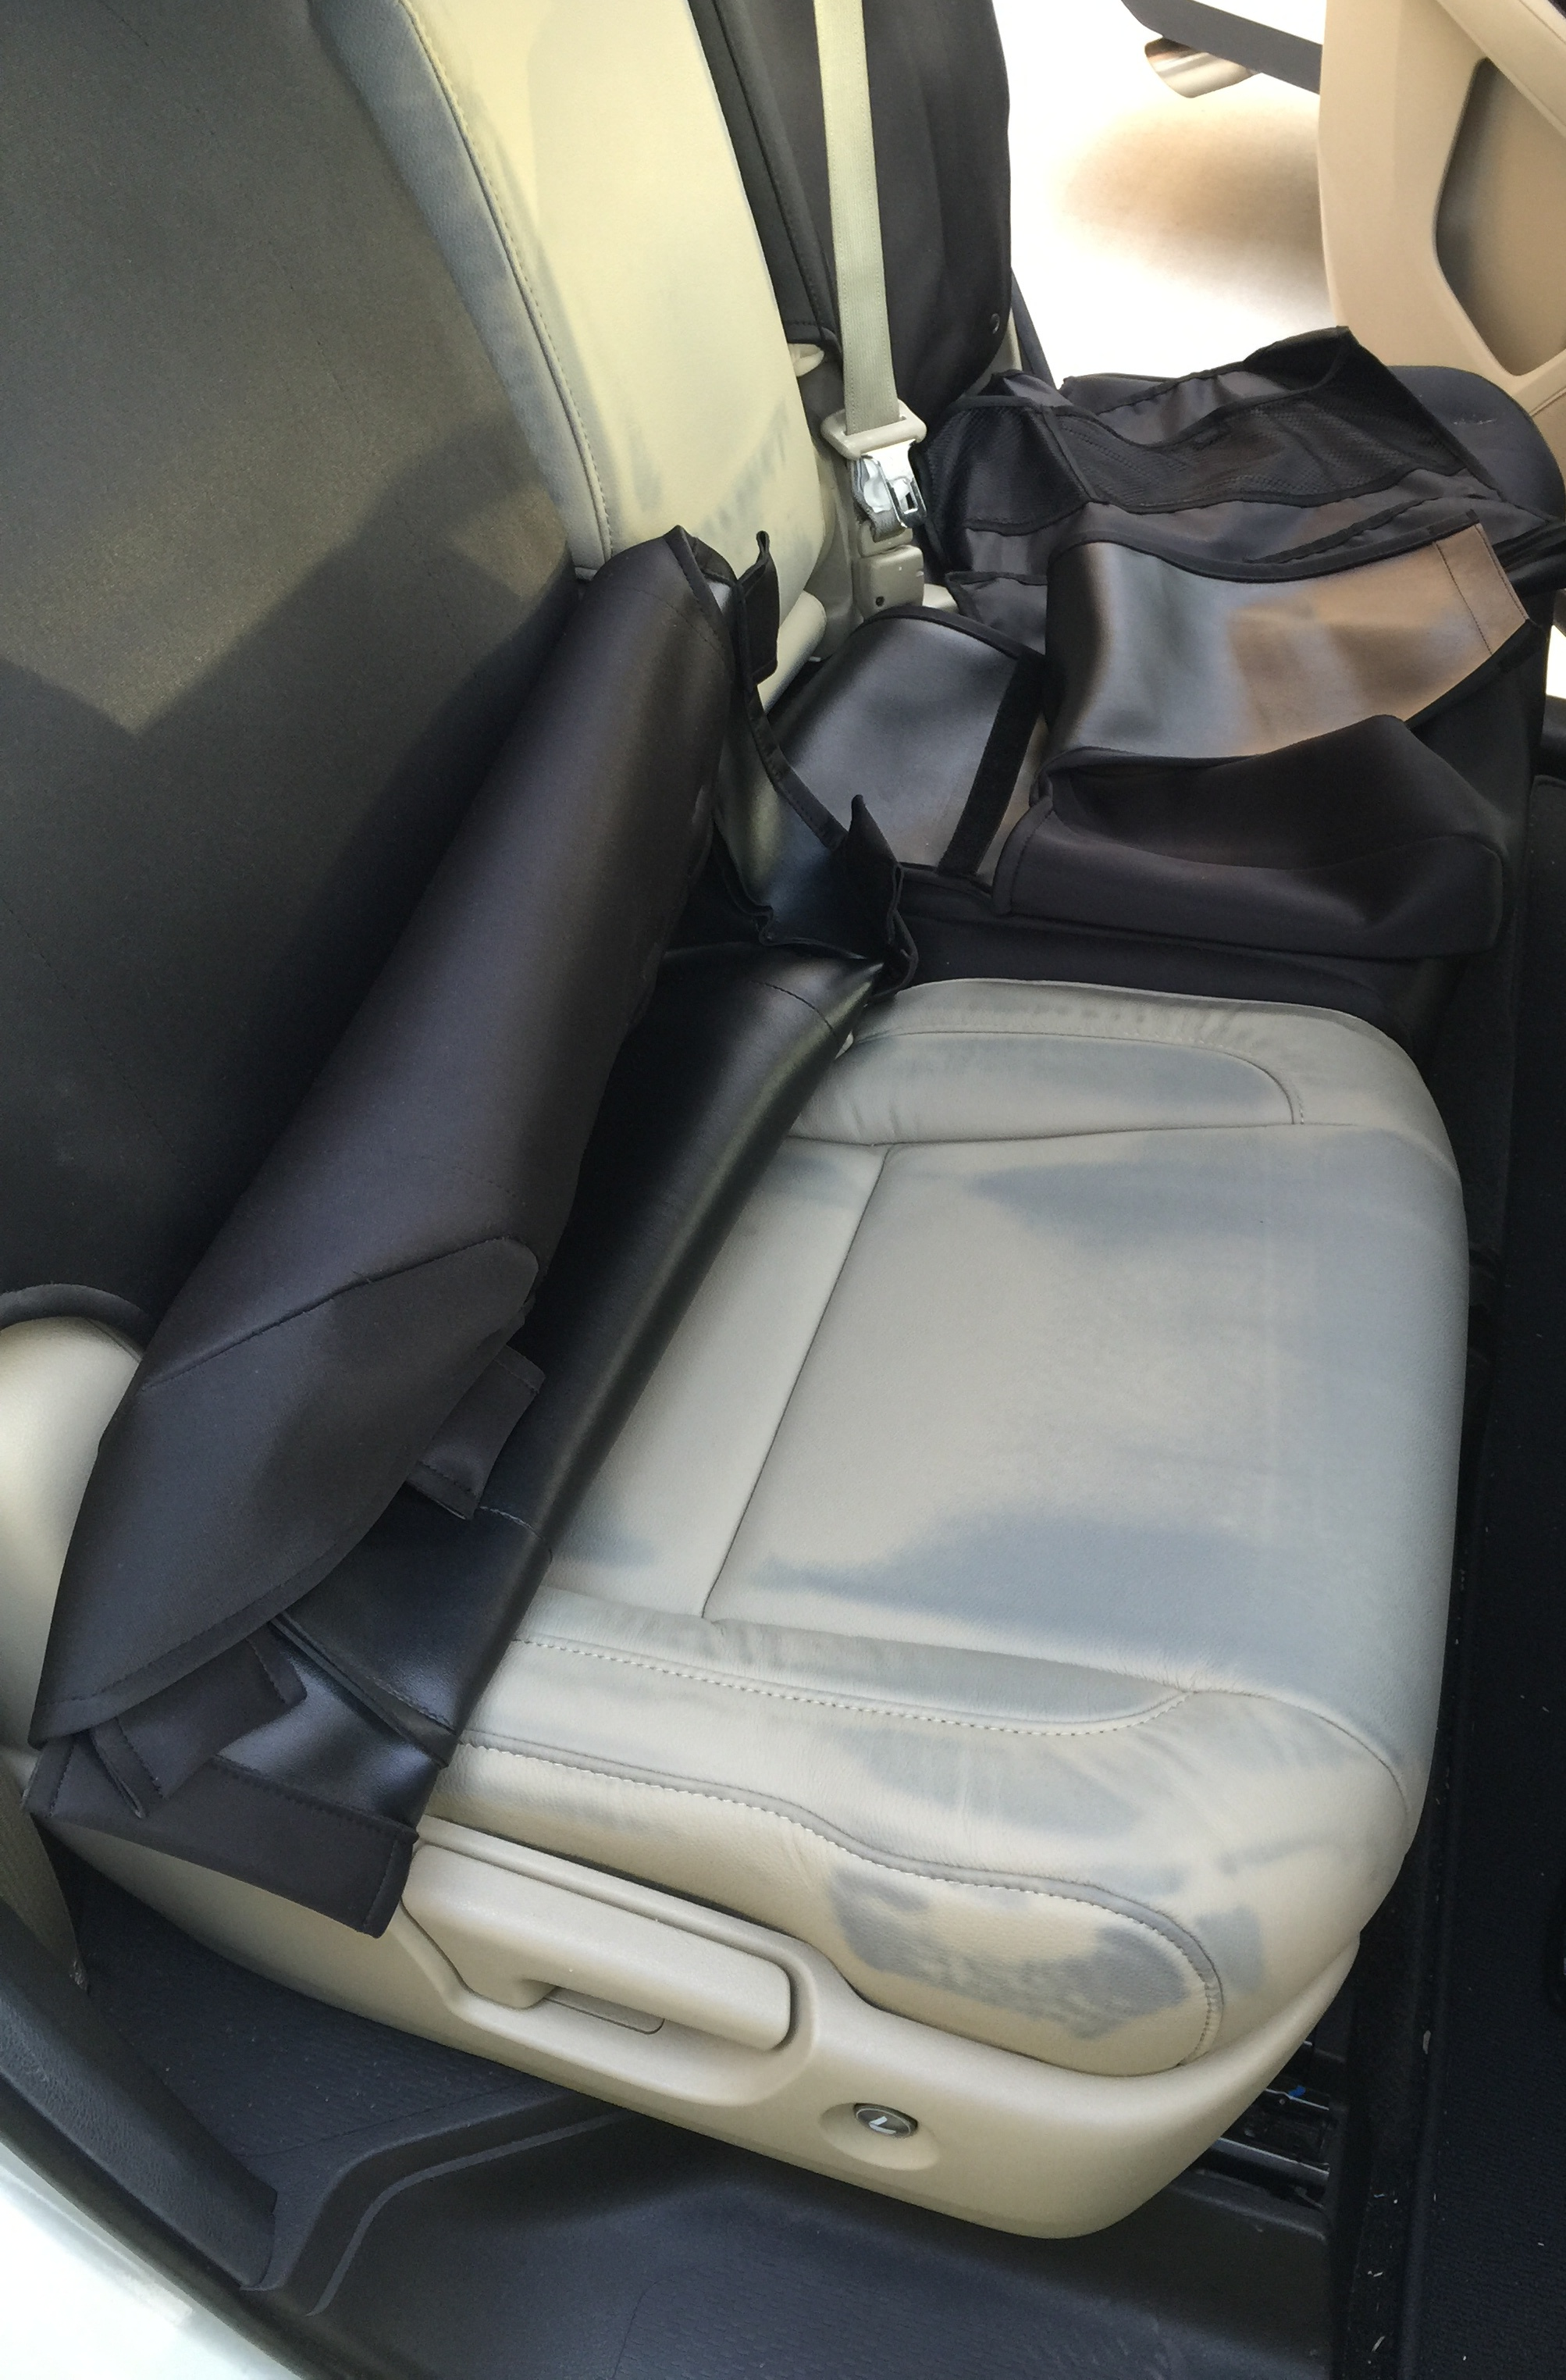 Leather Seats Ruined By OEM Seat Cover